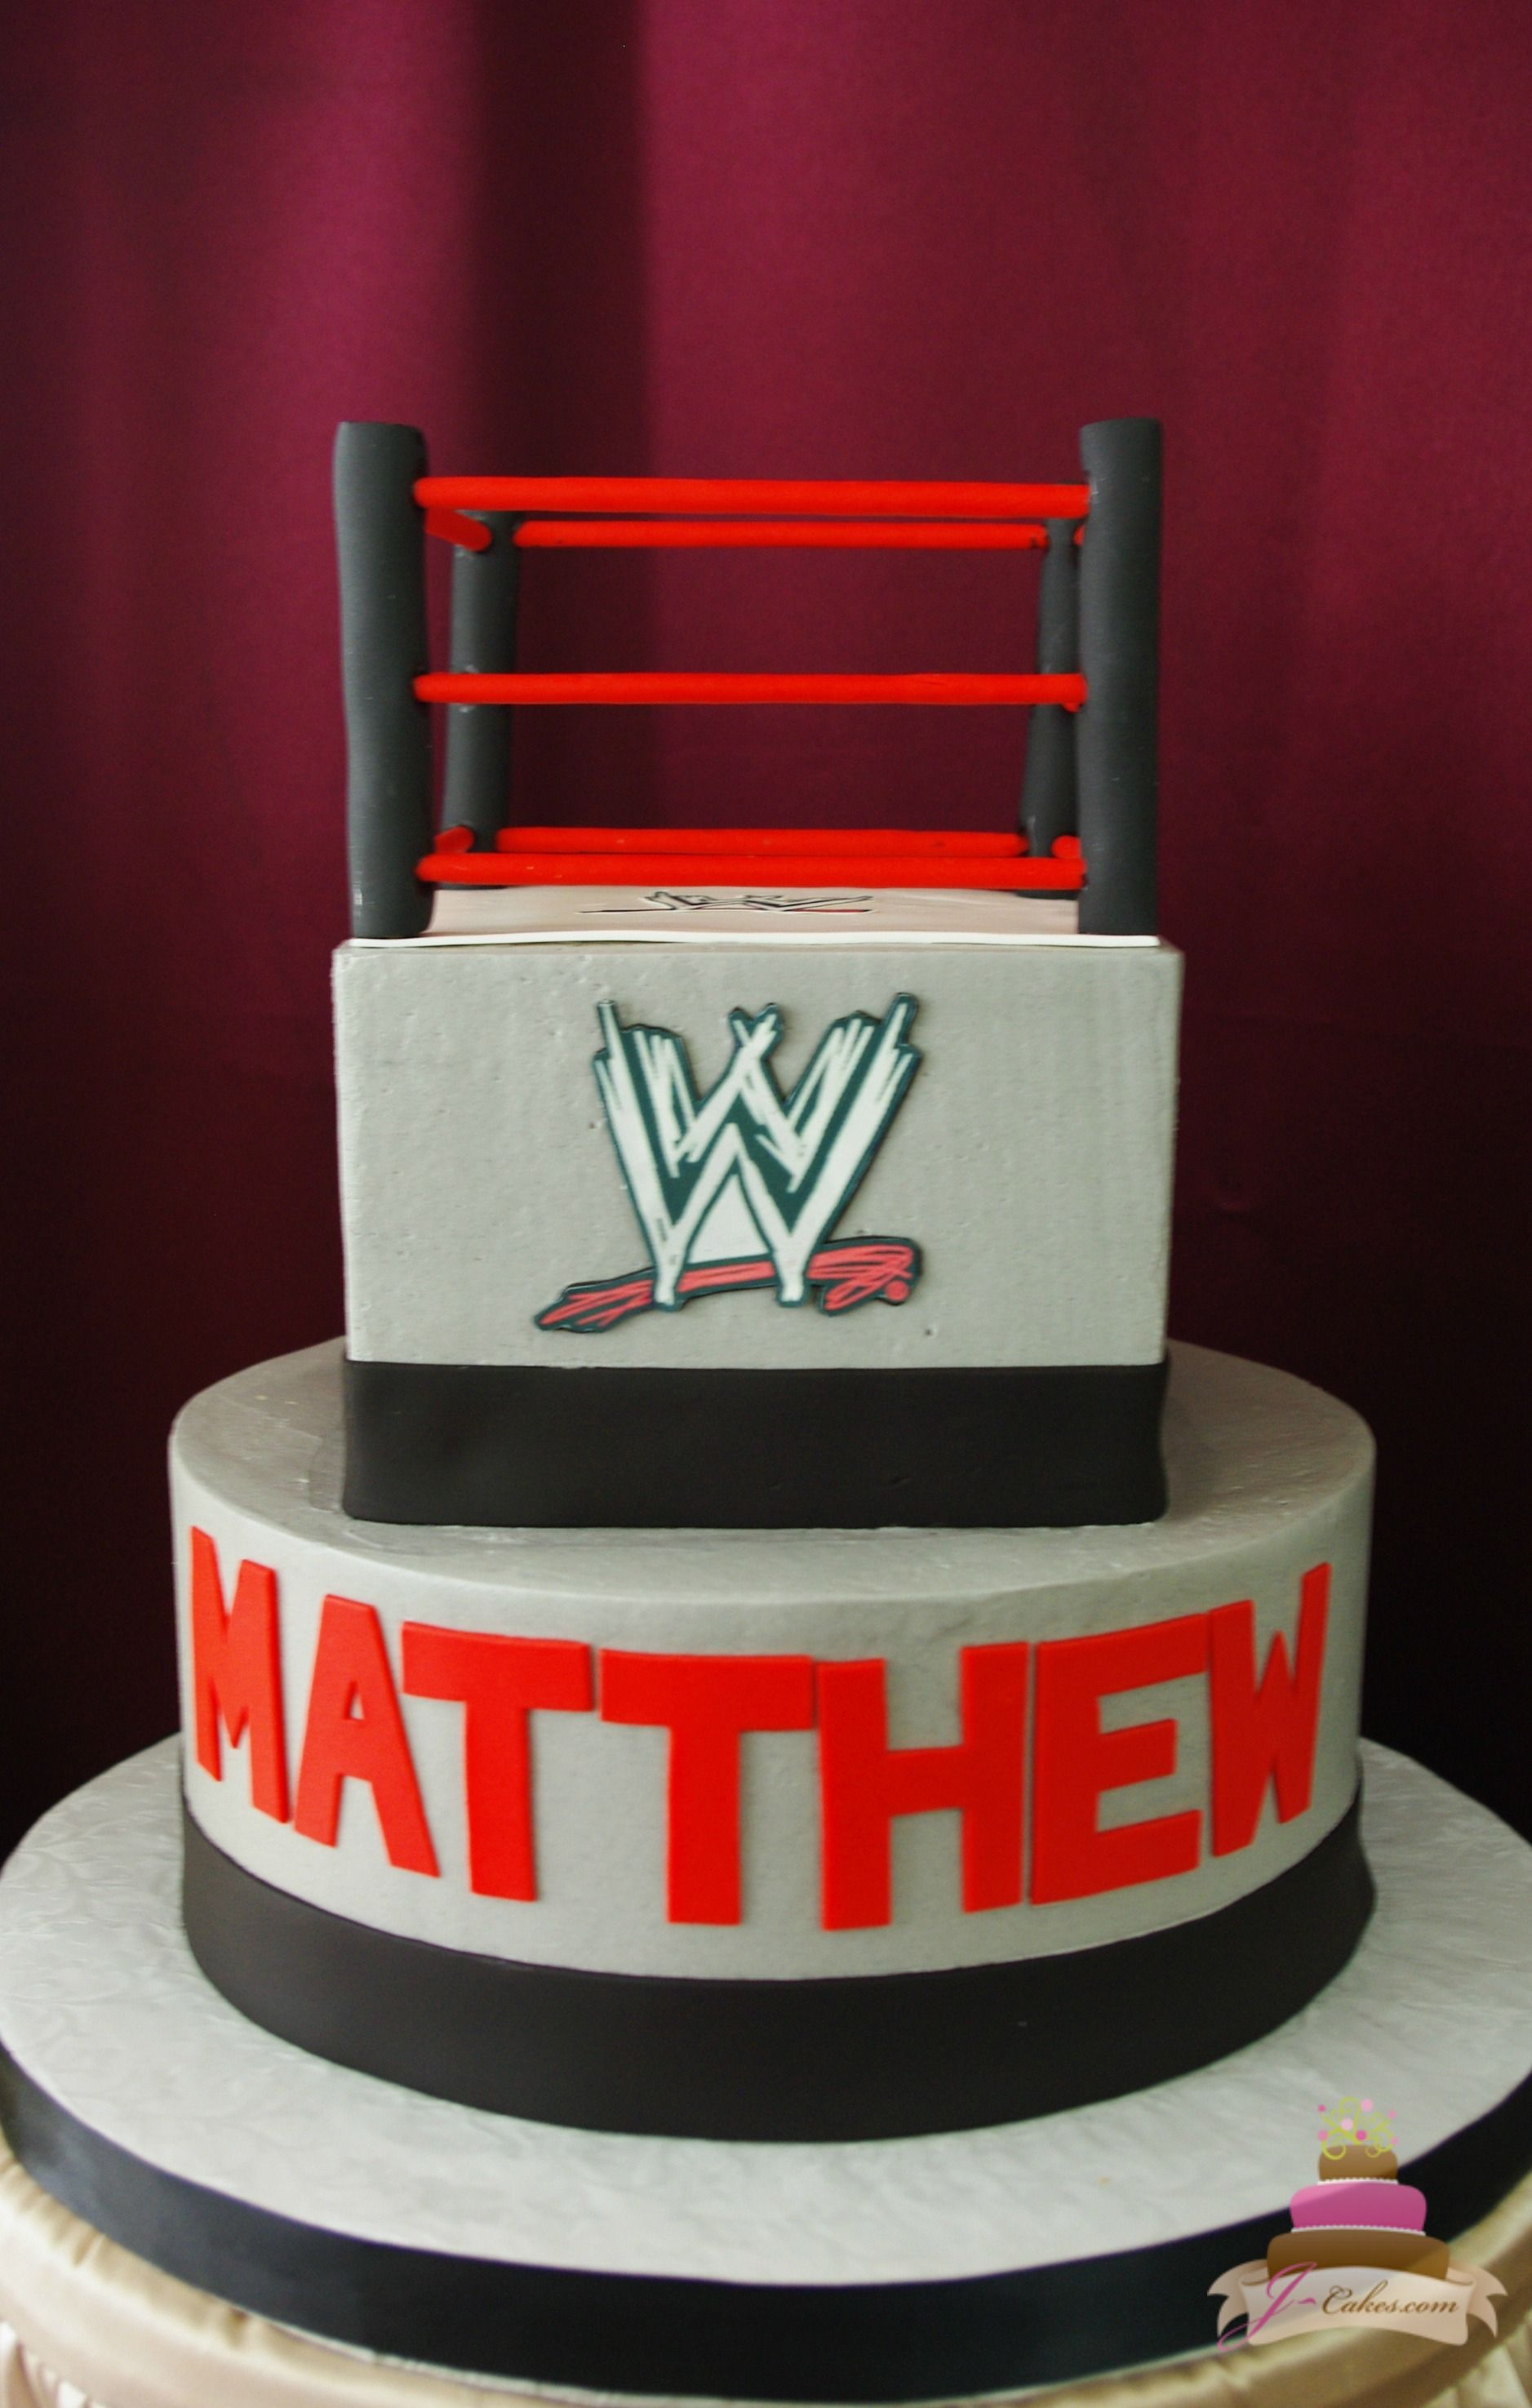 Pleasing Enchanting Childrens Cakes In Ct Wrestling Cake Wwe Birthday Personalised Birthday Cards Veneteletsinfo